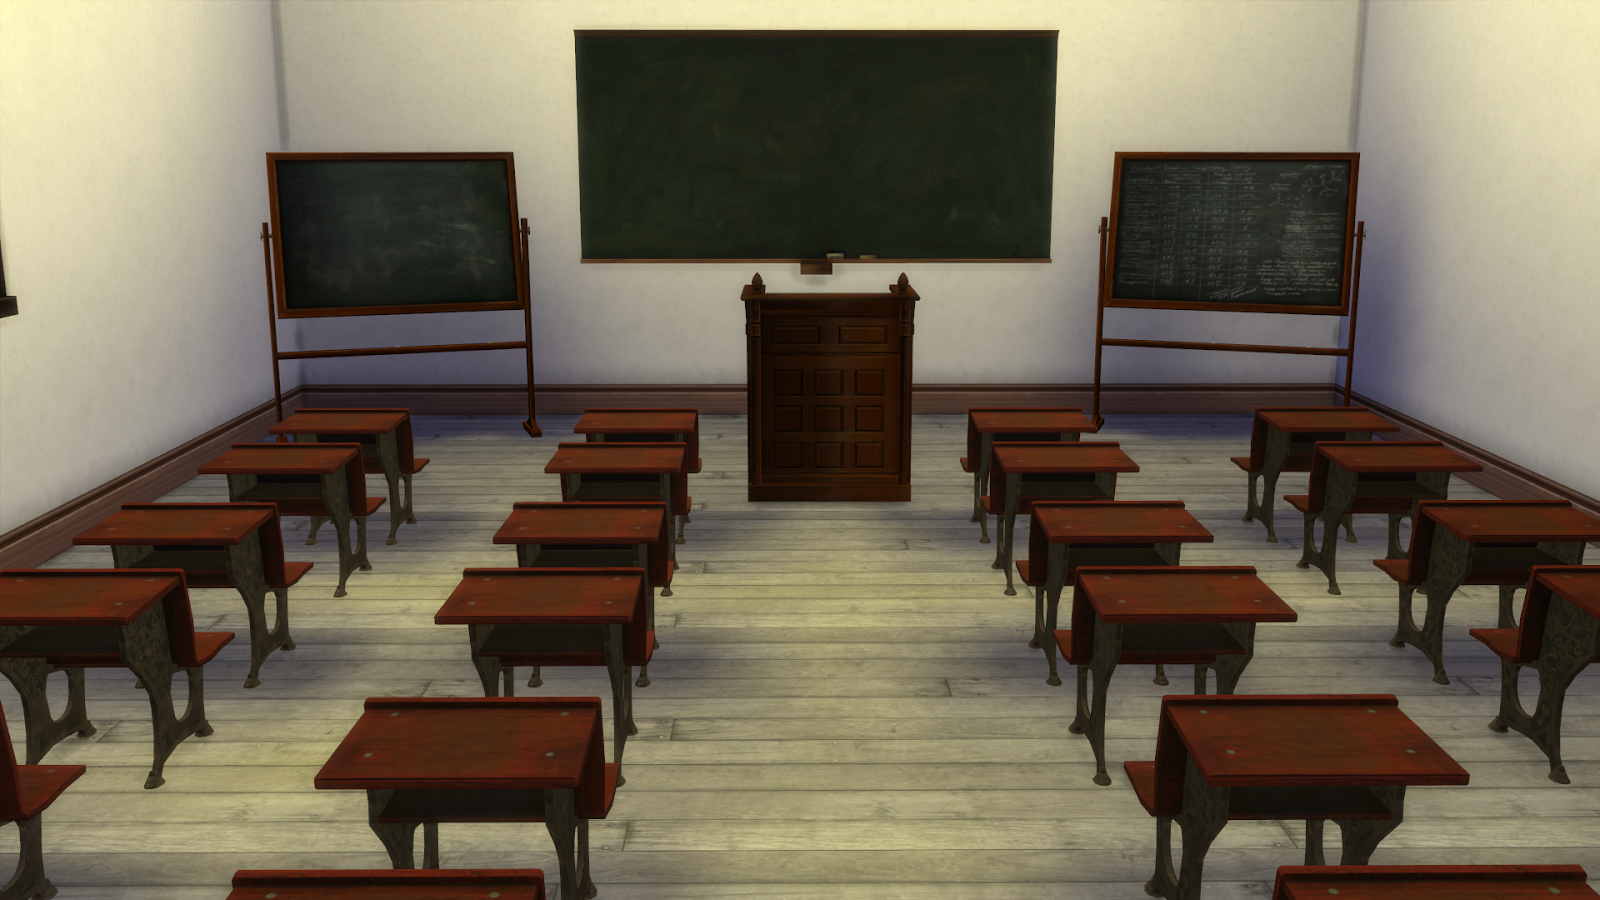 BioShock Infinite Classroom Conversion by Rose